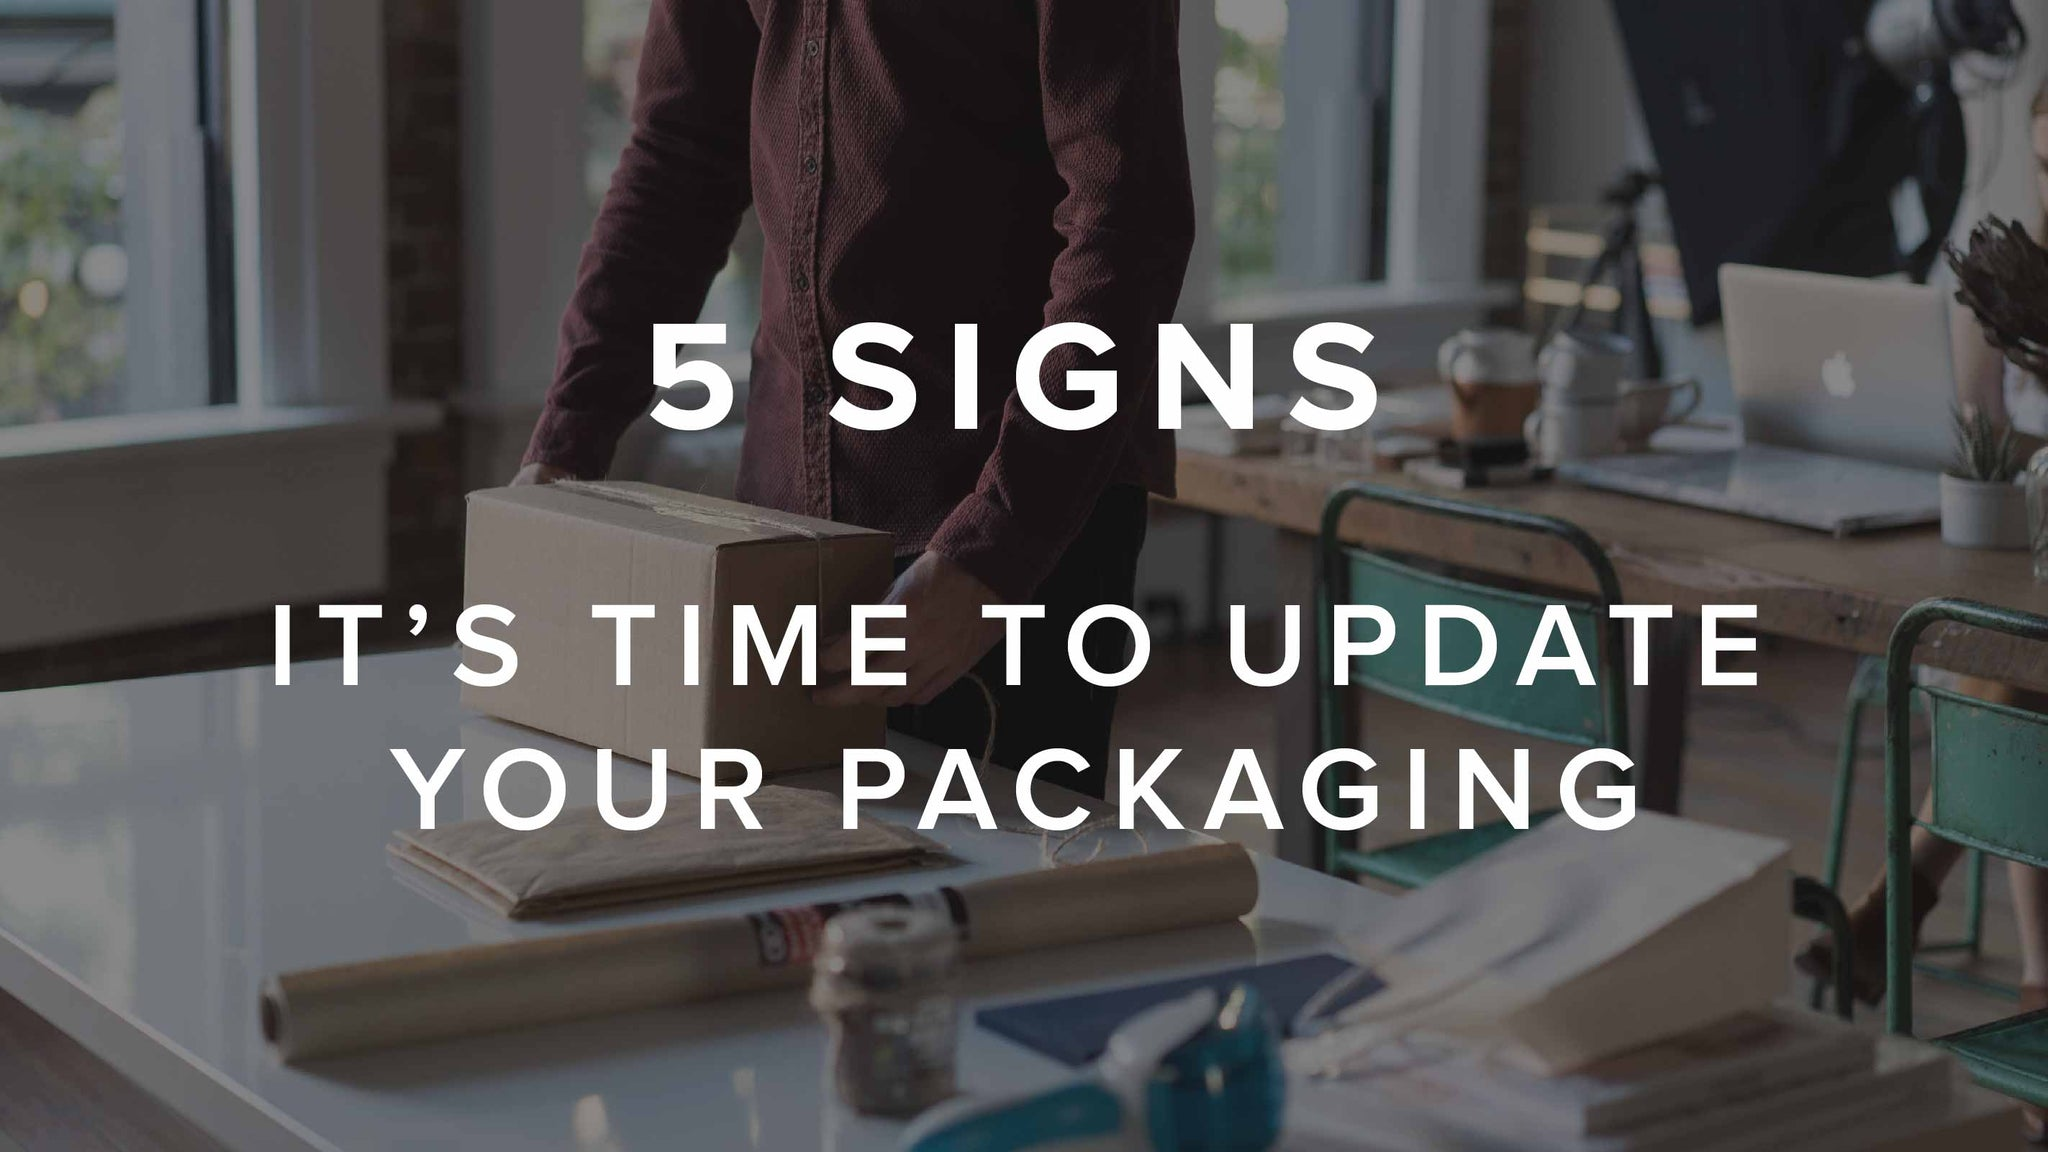 These 5 Signs Will Make You Update Your Packaging